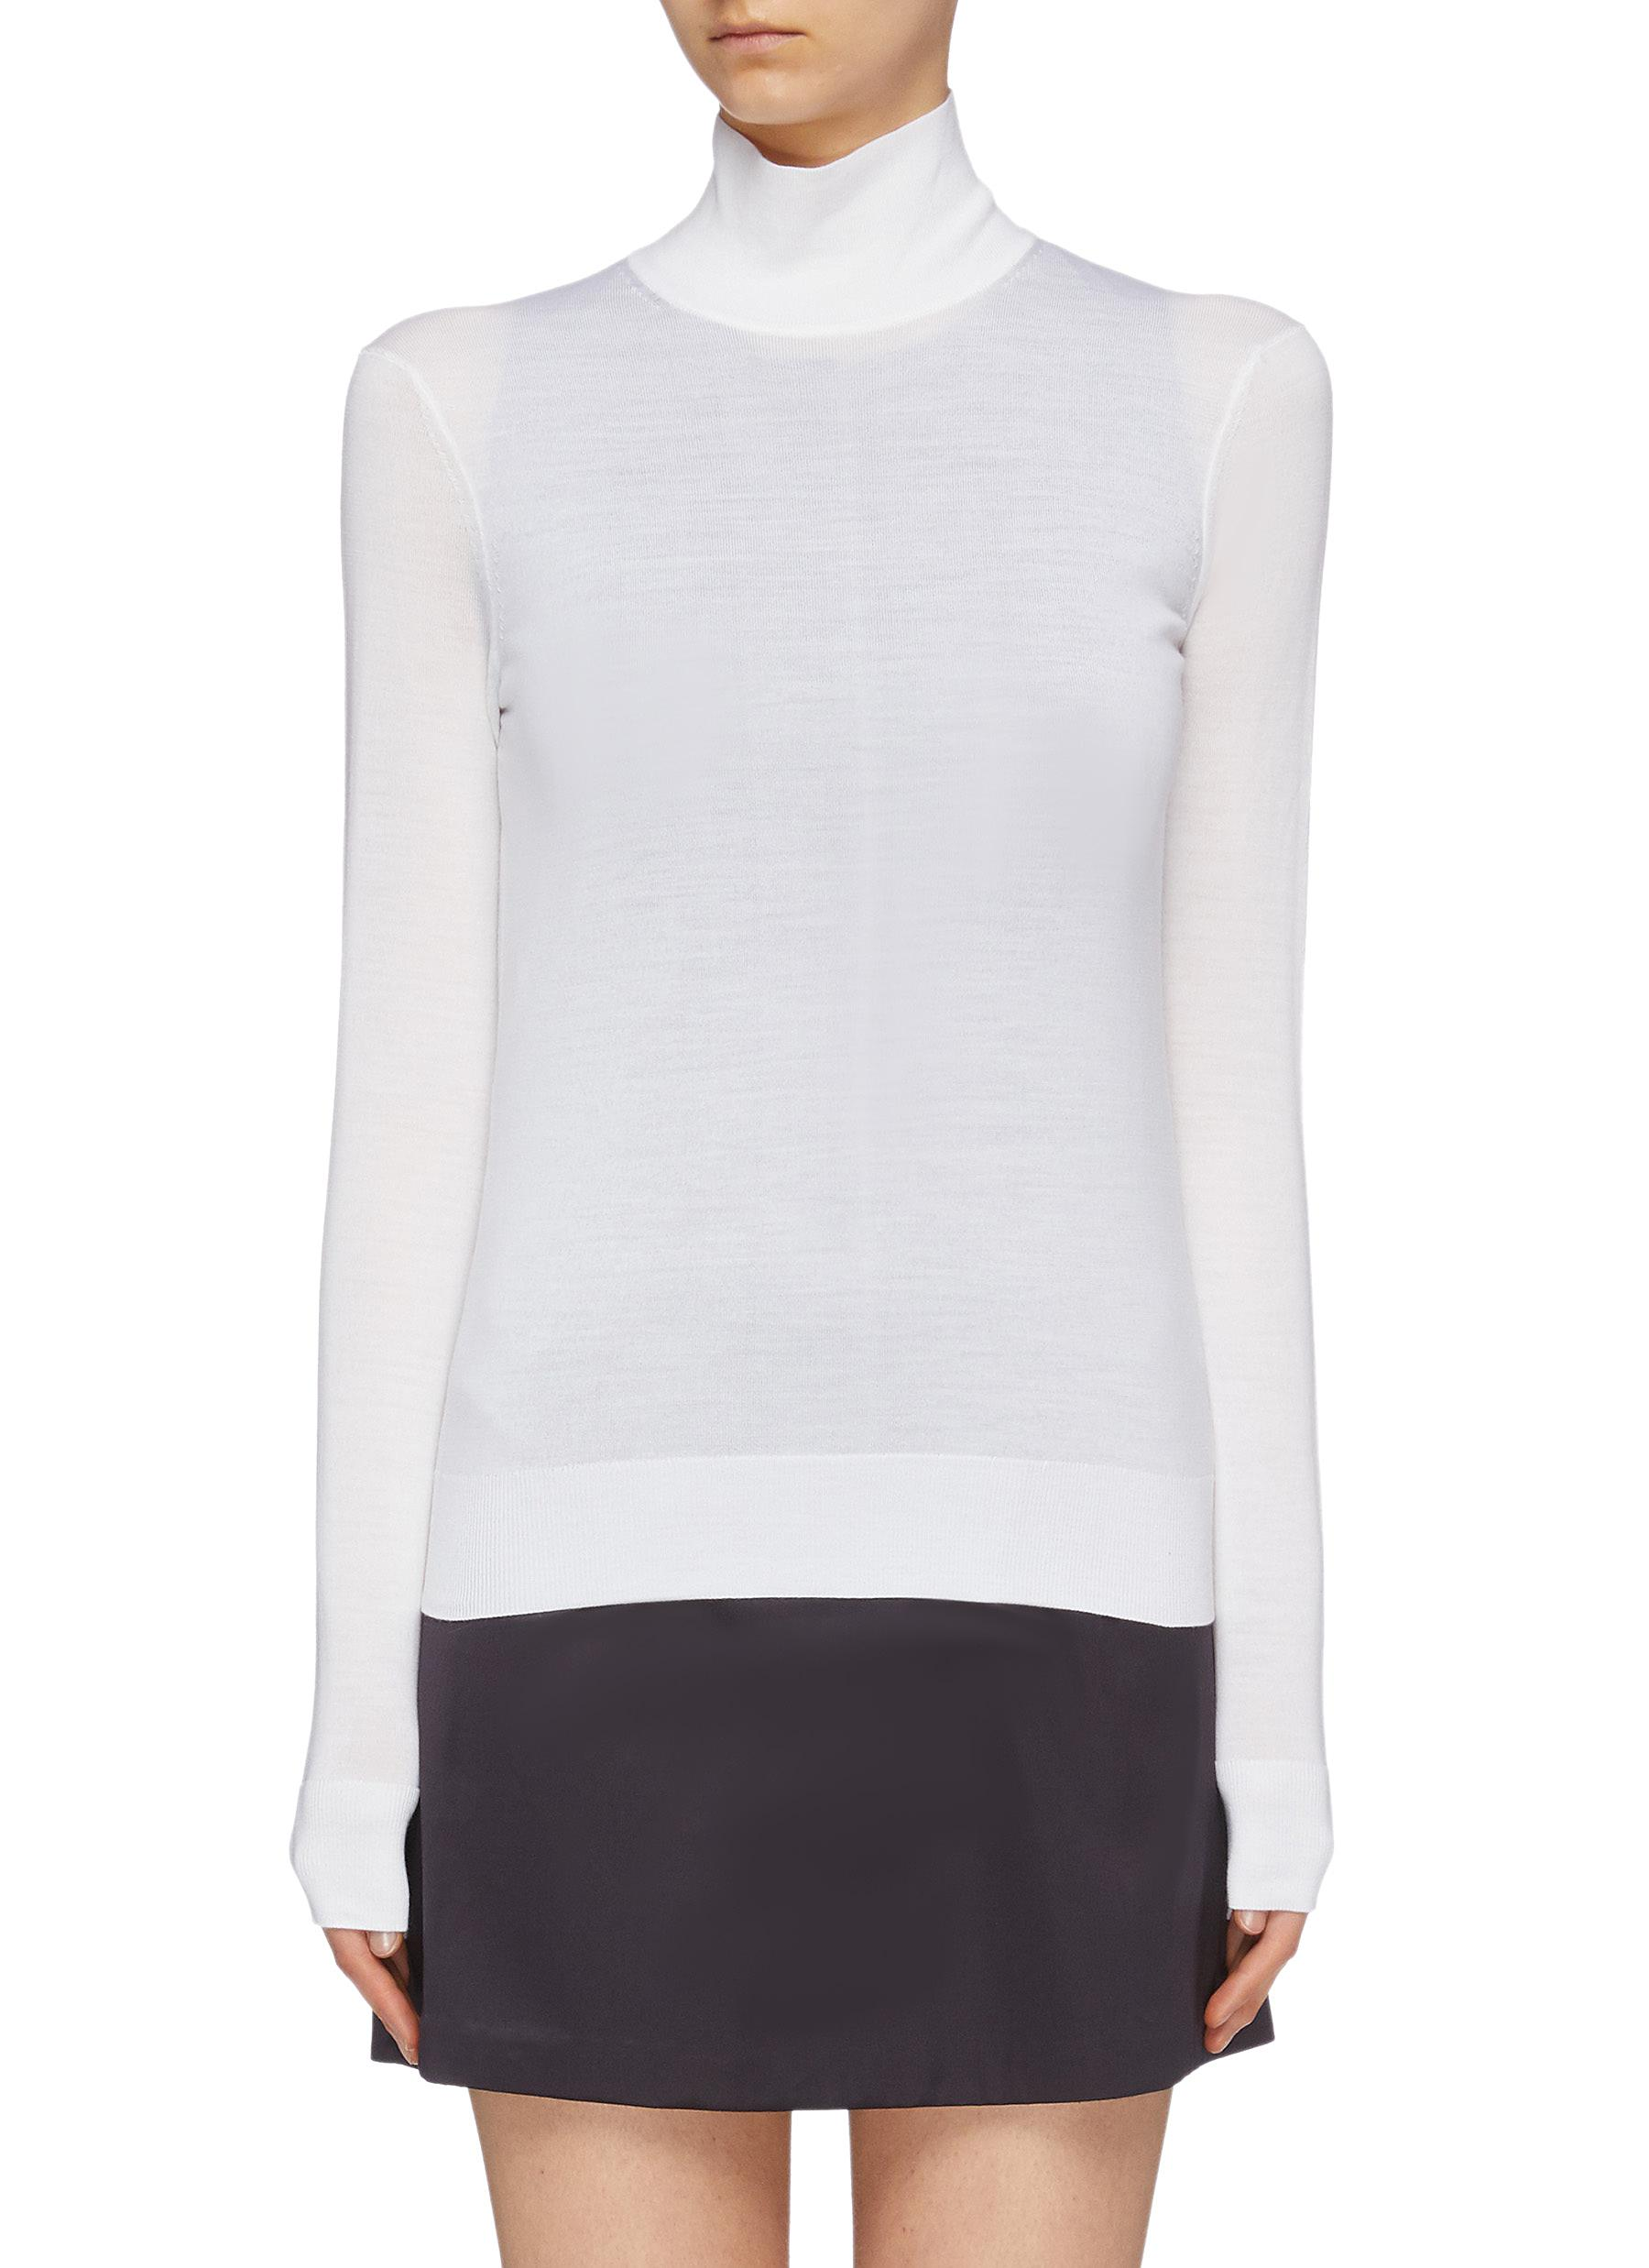 Wool blend turtleneck sweater by Theory